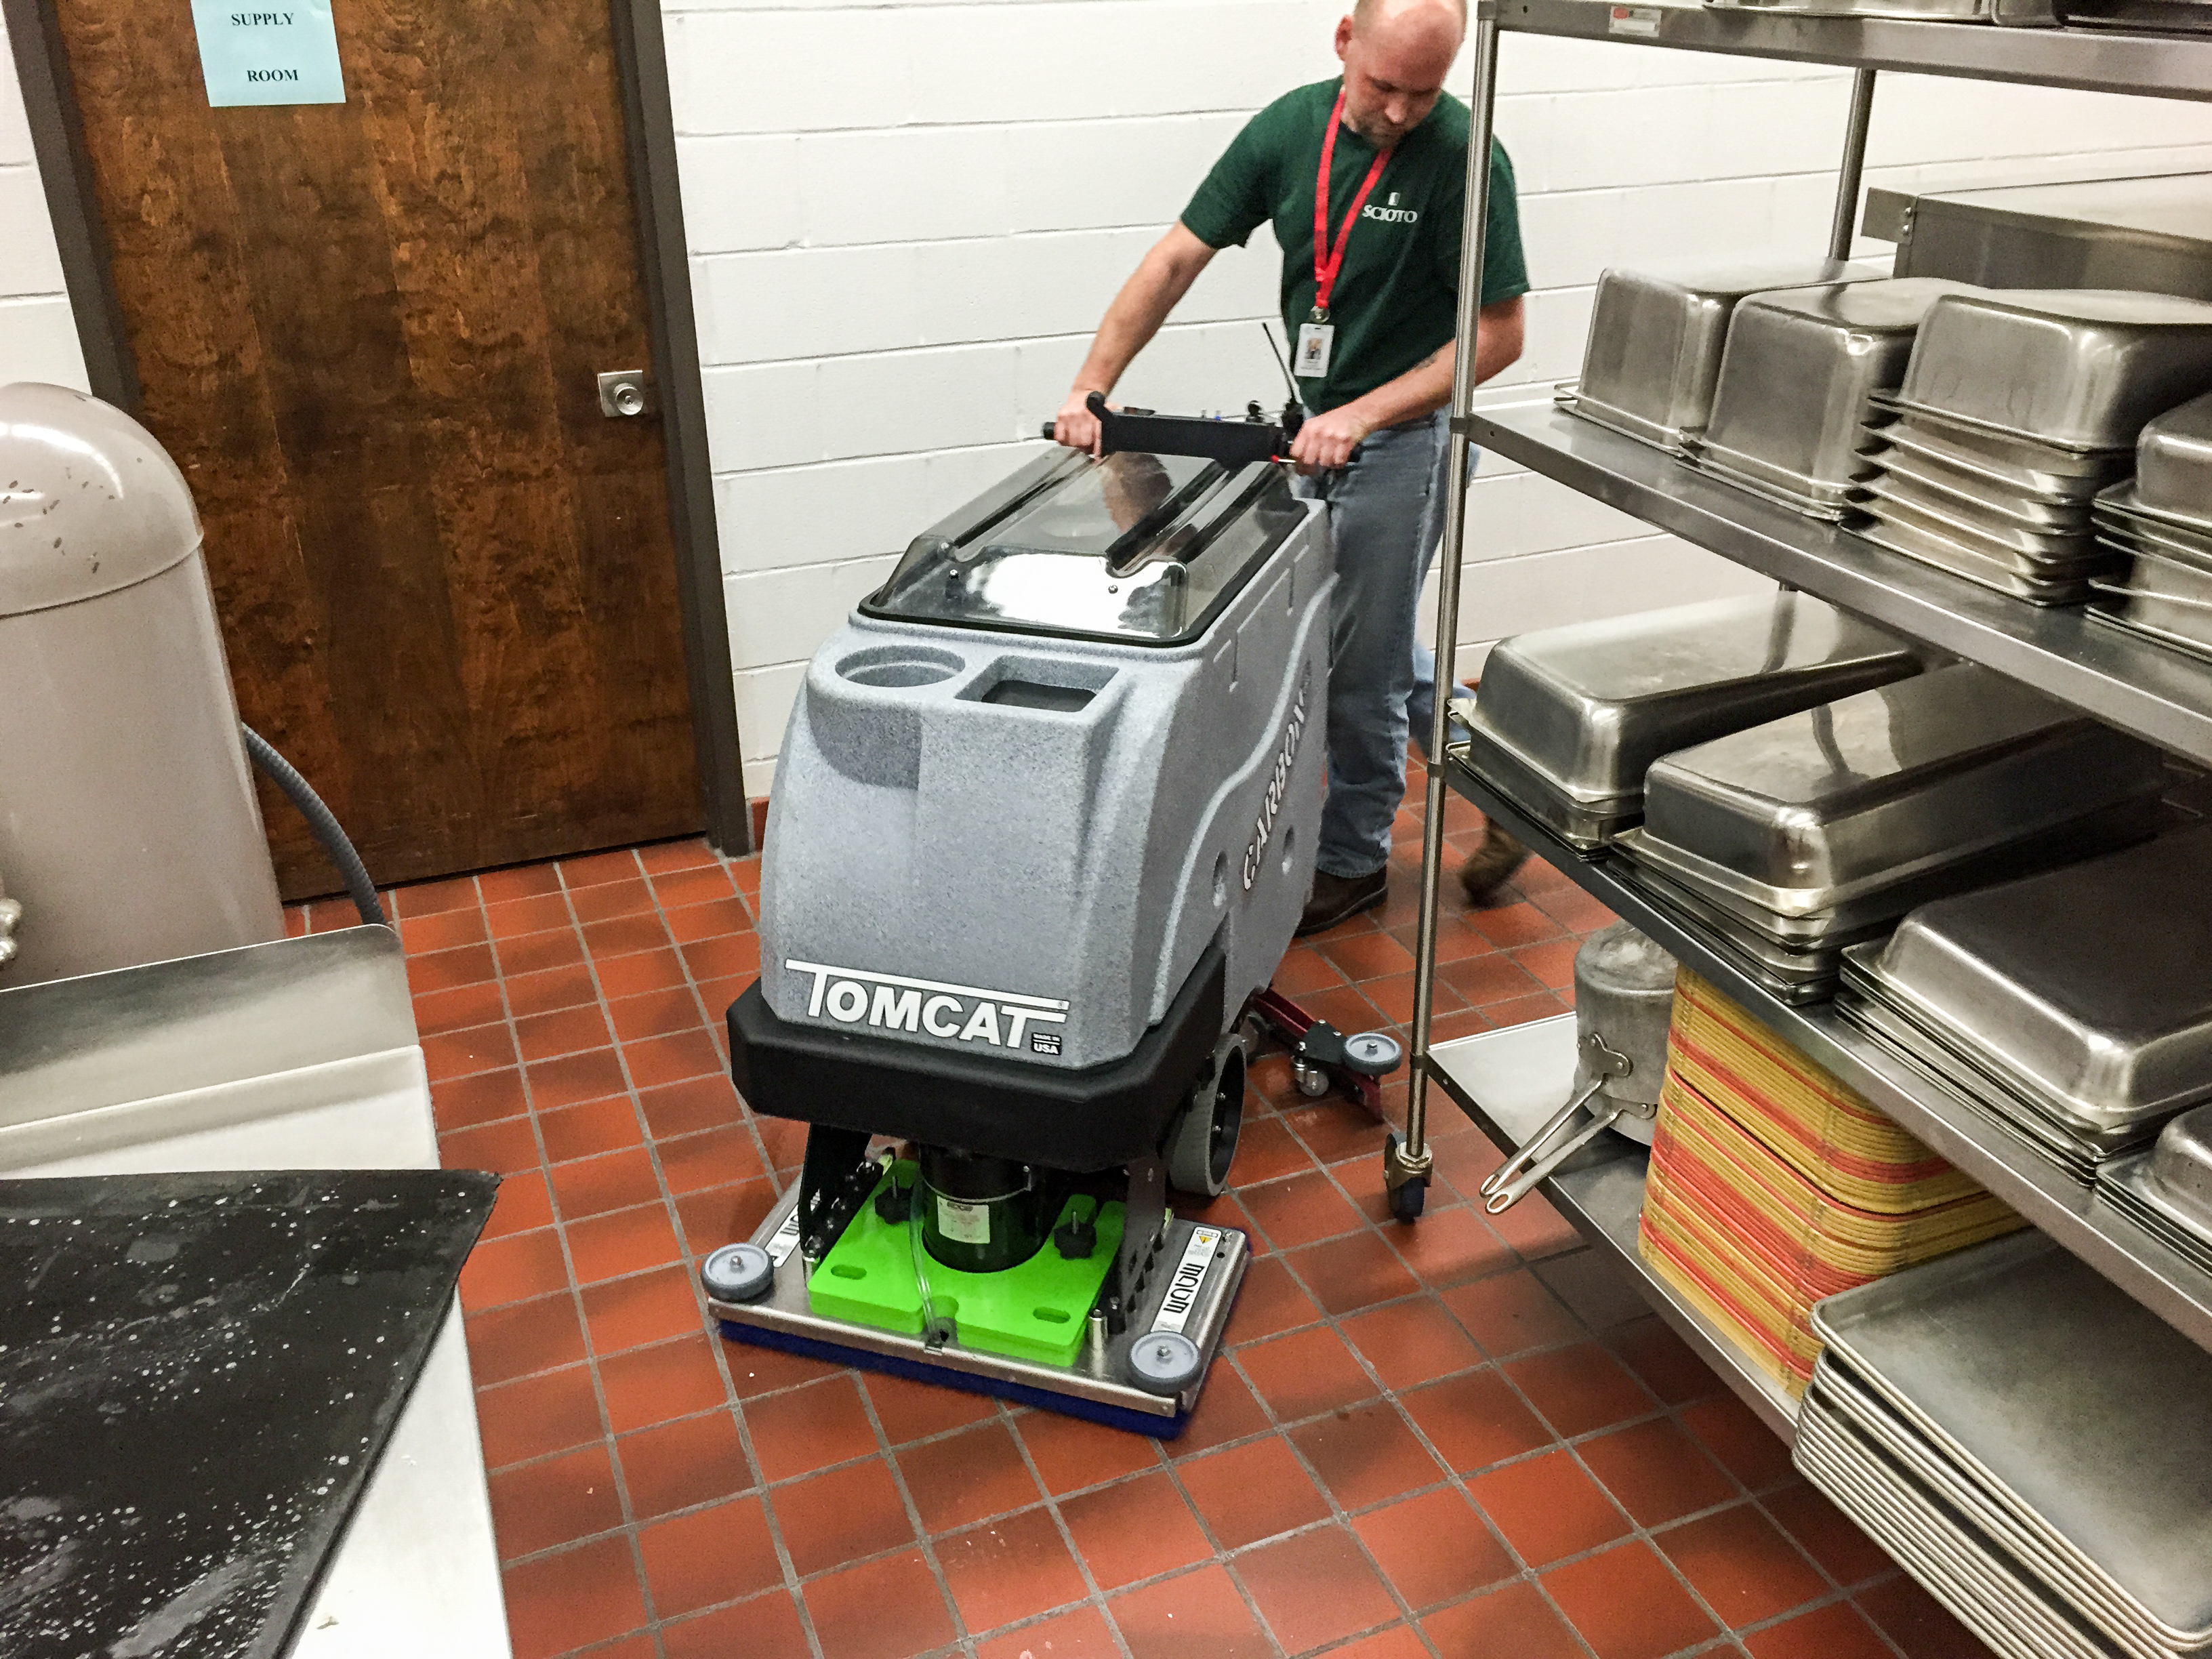 tomcat pressure cleaning floors court grabfile full size dryer tennis behind washing suppliers machines download commercial gallery floor paint magnum walk scrubber original of courts